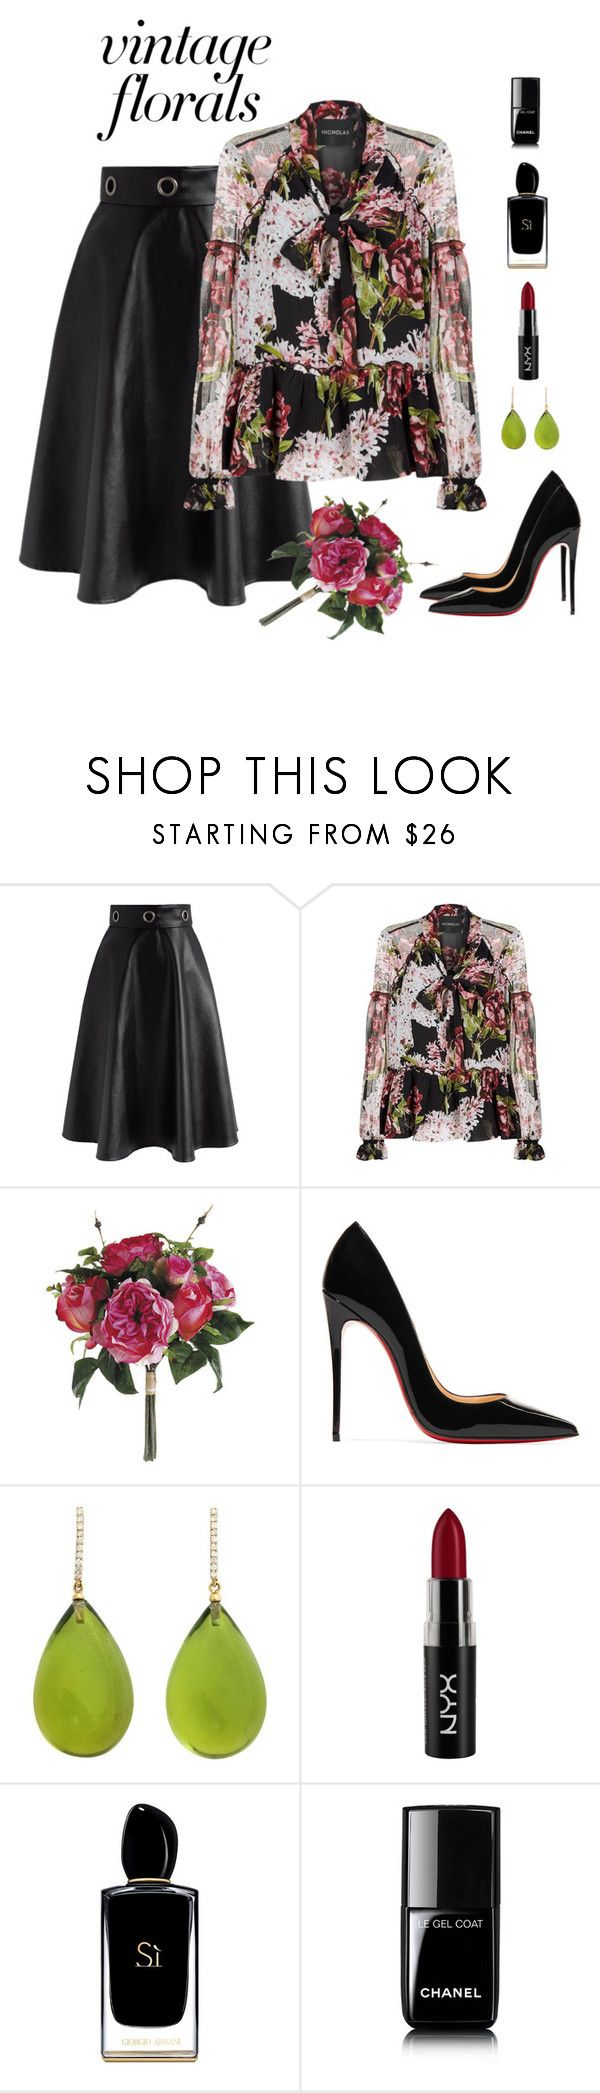 """Smell the Roses: Vintage Florals"" by alara-cary on Polyvore featuring Chicwish, Nicholas, Christian Louboutin, Michael Kanners, NYX, Giorgio Armani, Chanel, vintage and vintageflorals"